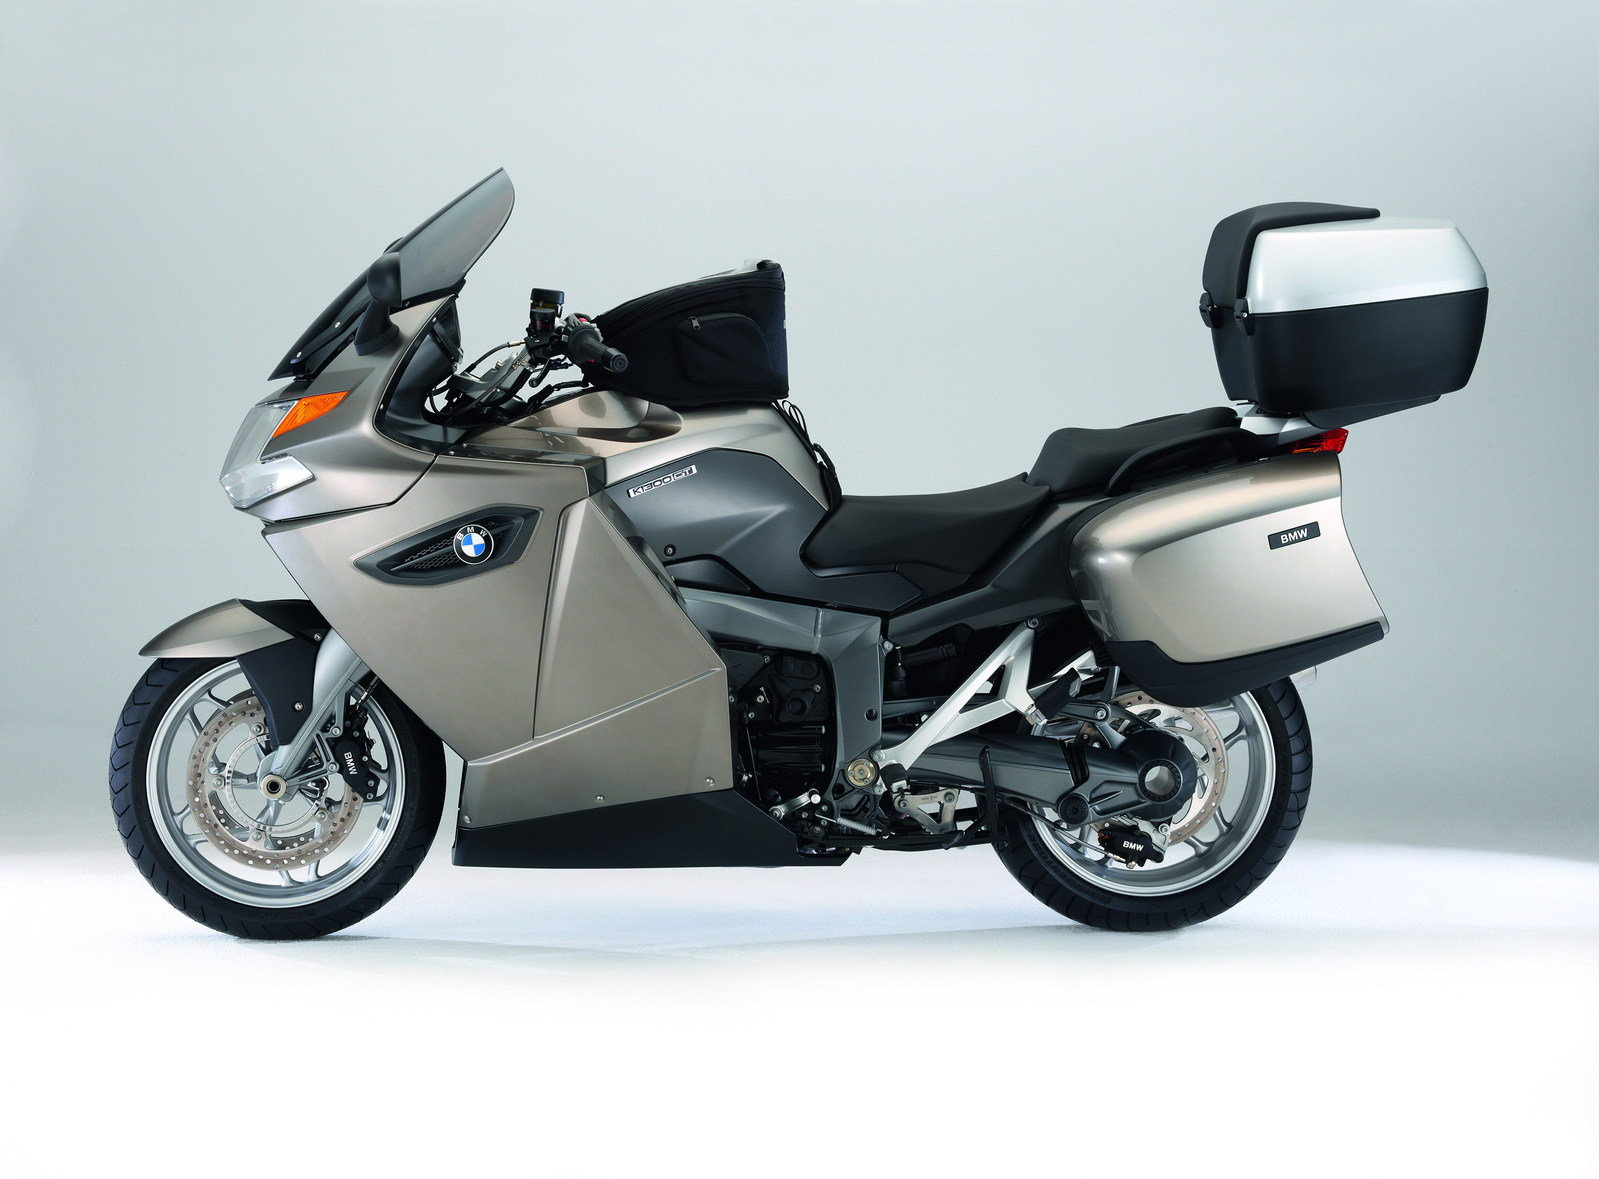 2009 bmw k 1300 gt picture 303139 motorcycle review. Black Bedroom Furniture Sets. Home Design Ideas